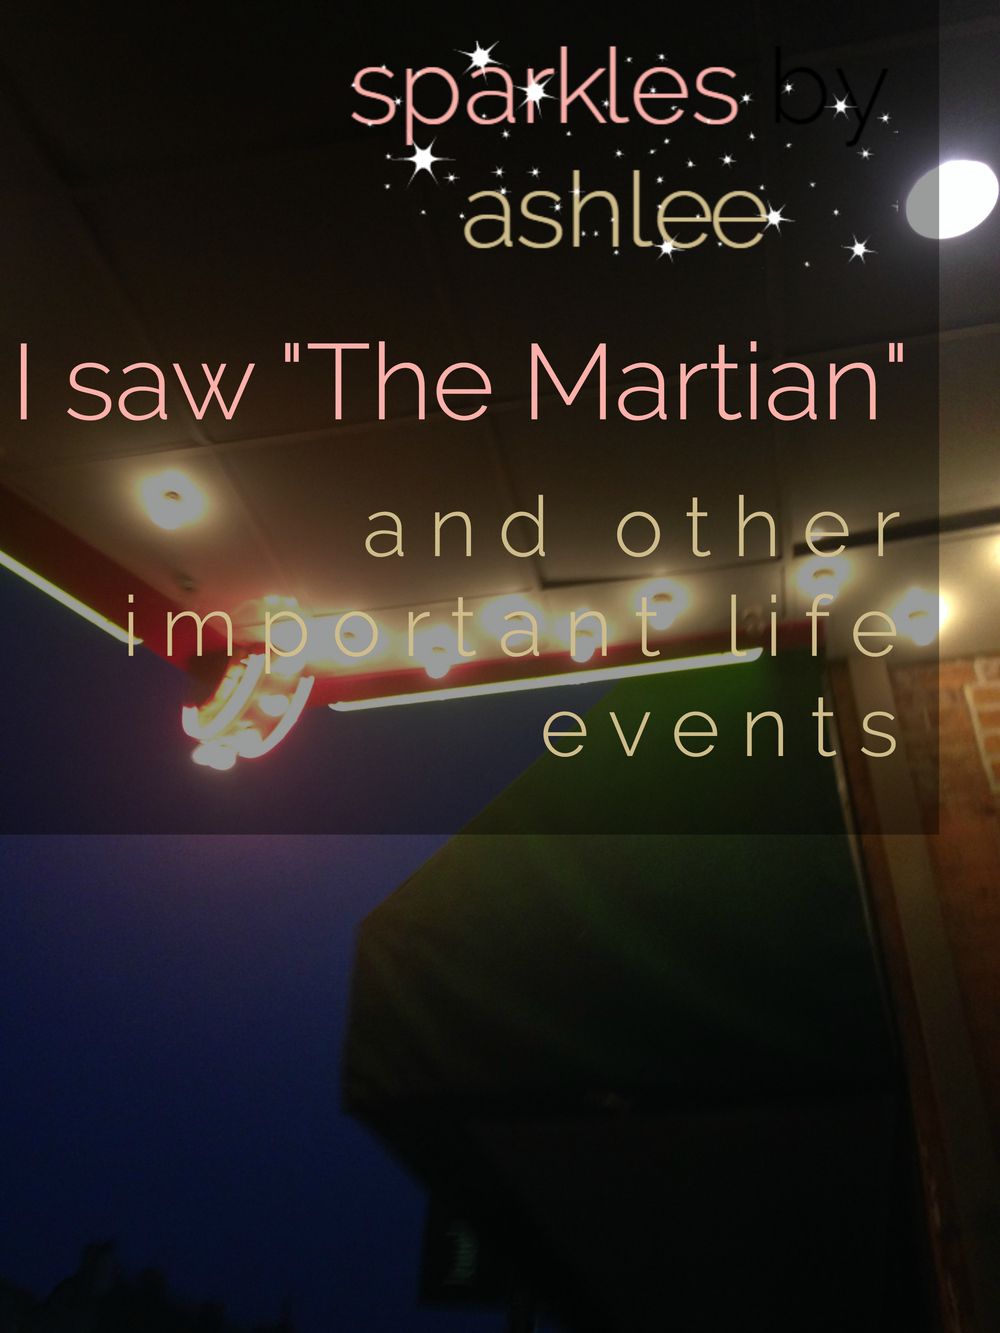 I-Saw-The-Martian-and-Other-Important-Life-Events-Sparkles-by-Ashlee.jpg